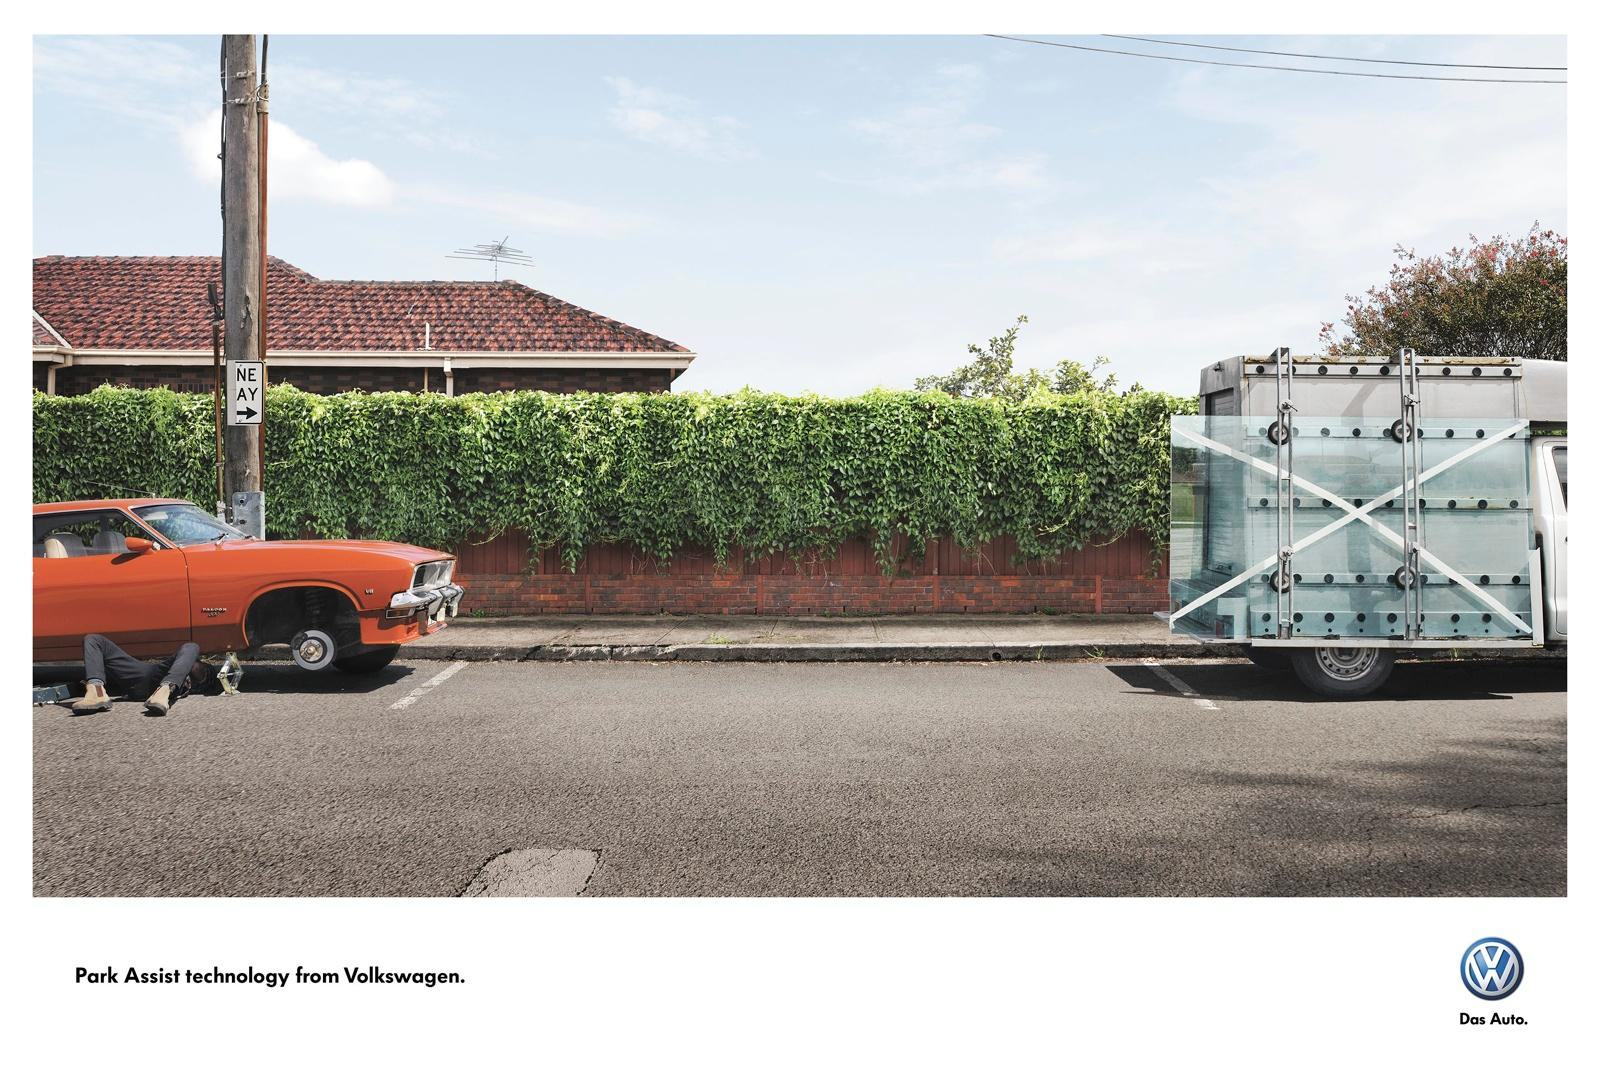 Volkswagen Print Ad -  Park Assist Technology, Car Jack-Glass Truck